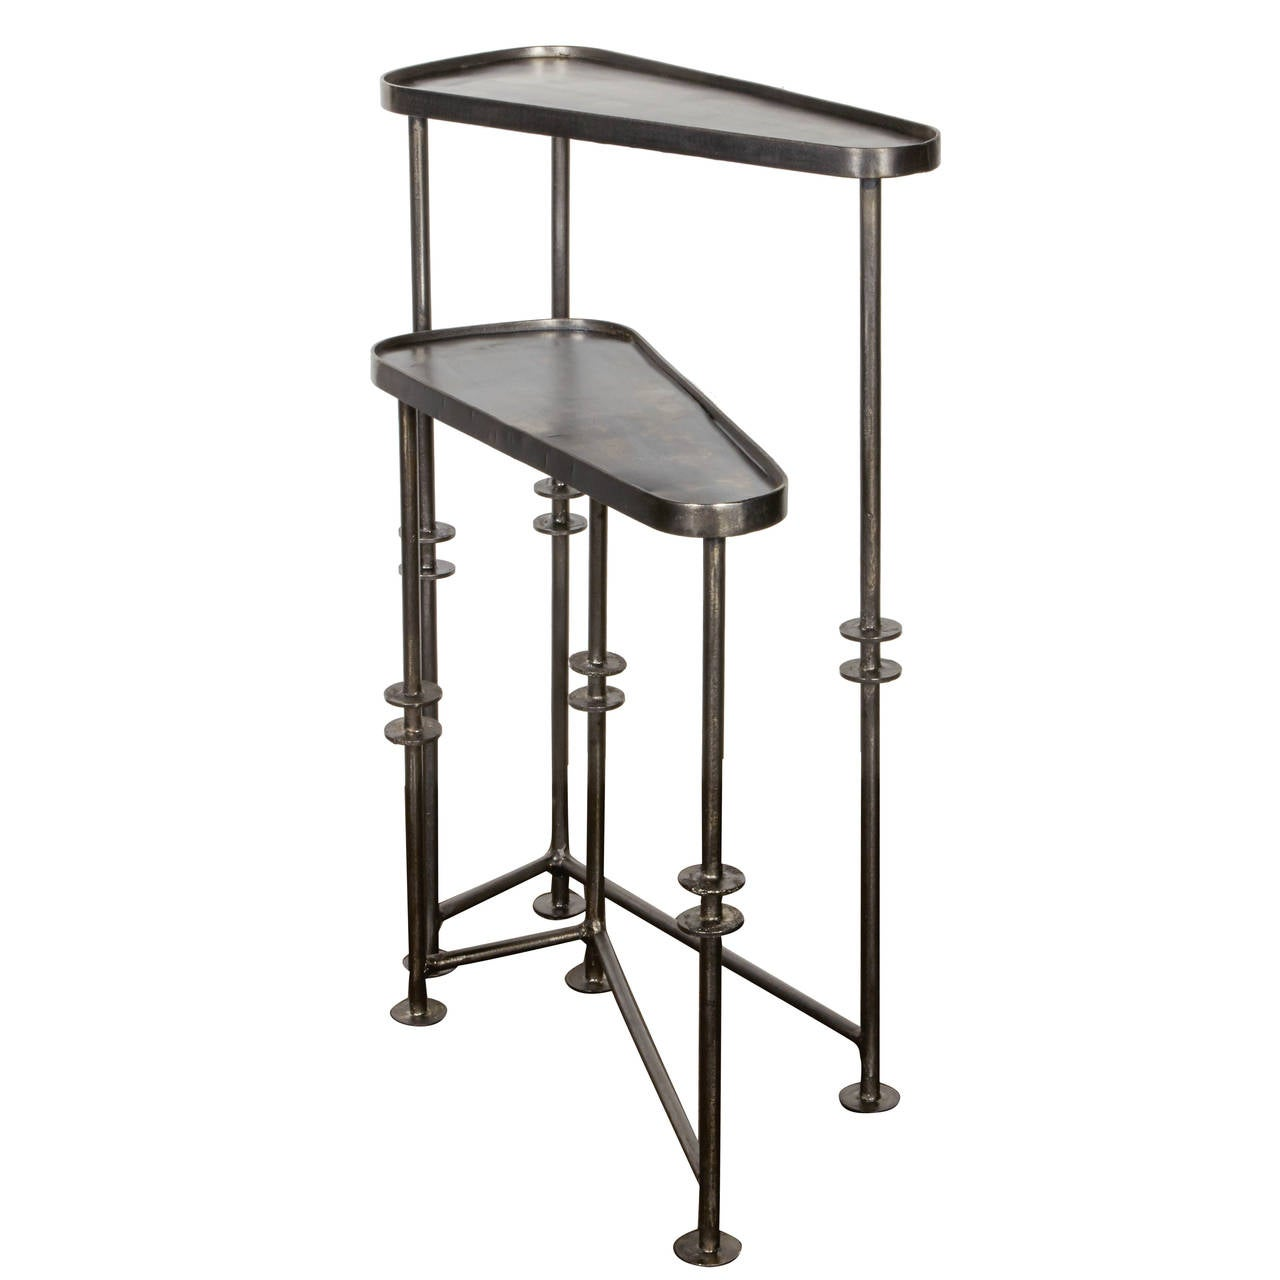 High Quality Industrial Nesting Tables And Side Tables In Burnished Metal 1